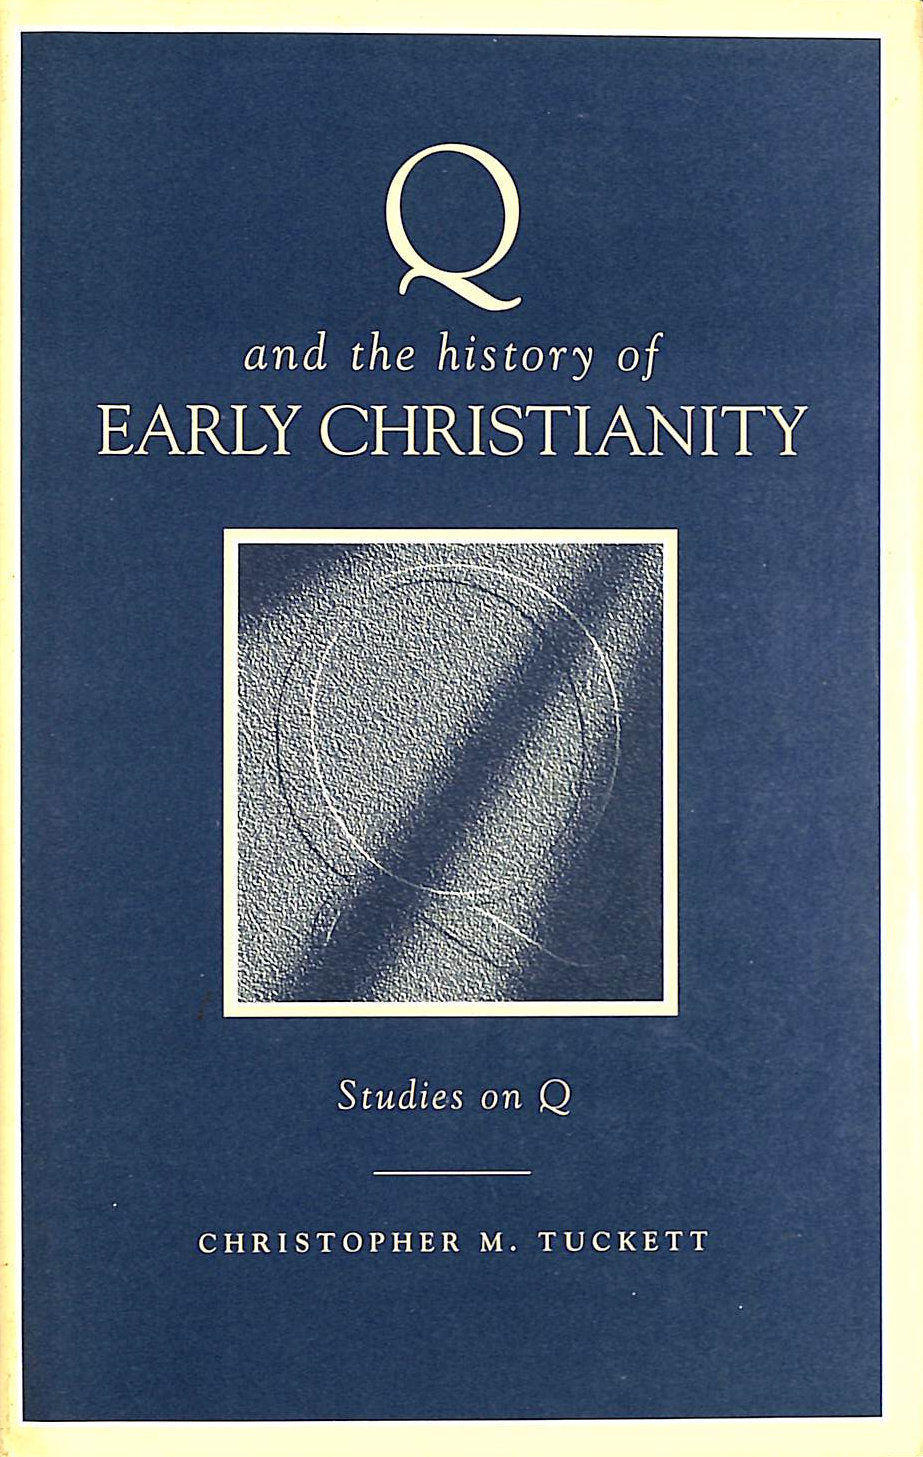 Image for Q and the History of Early Christianity: Studies on Q (T&T Clark Cornerstones)